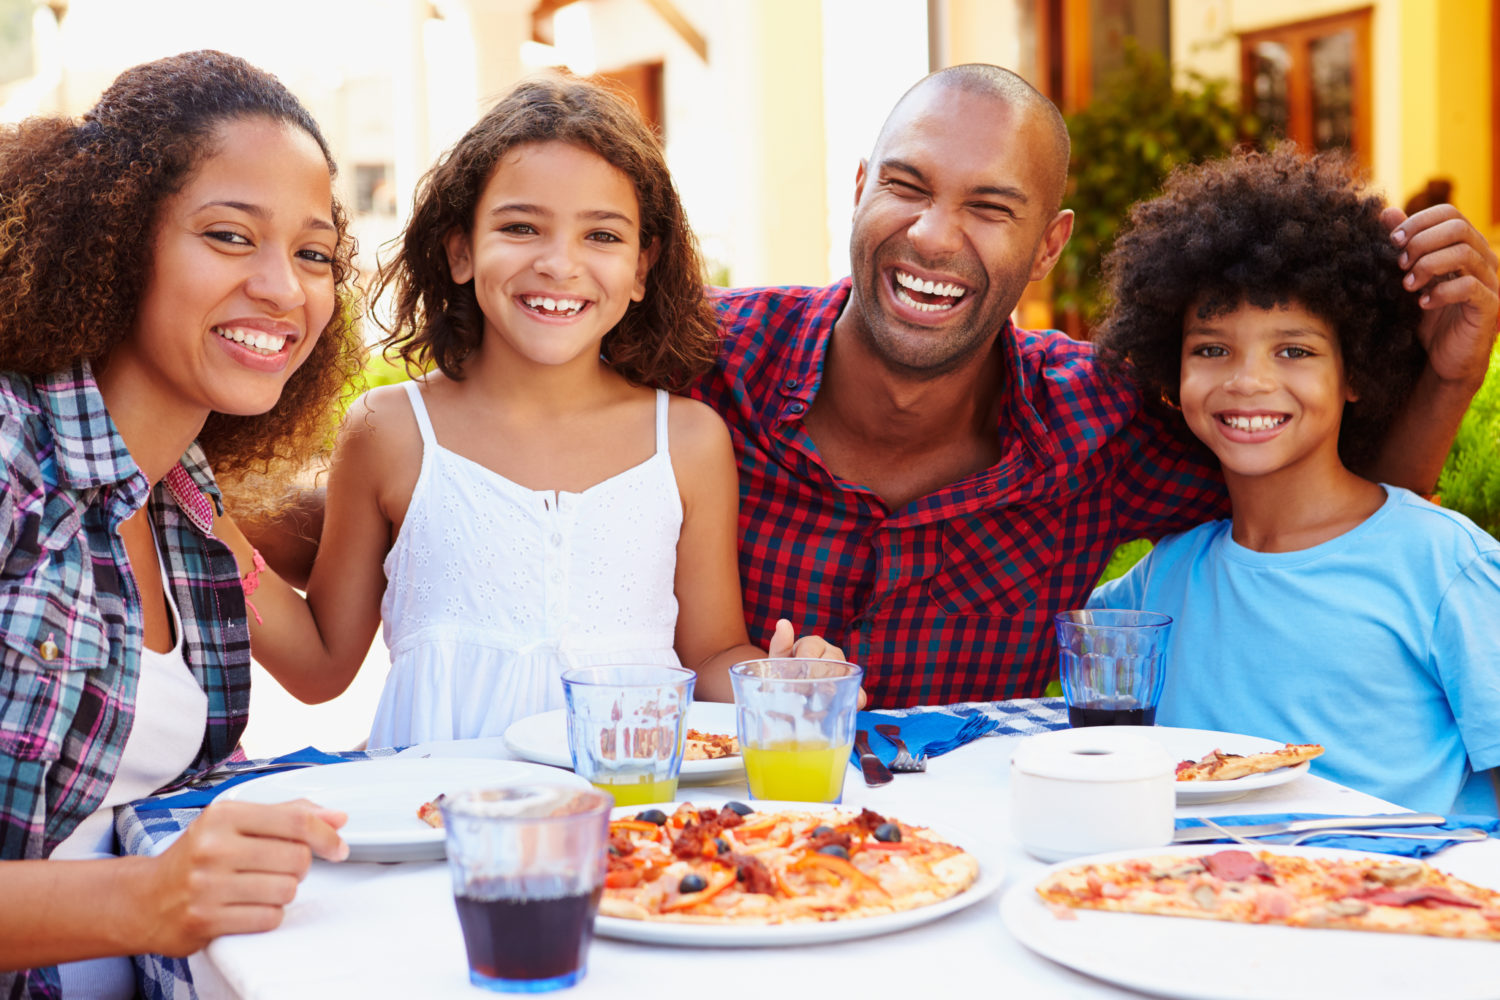 California Pizza Kitchen Catering Promo Code